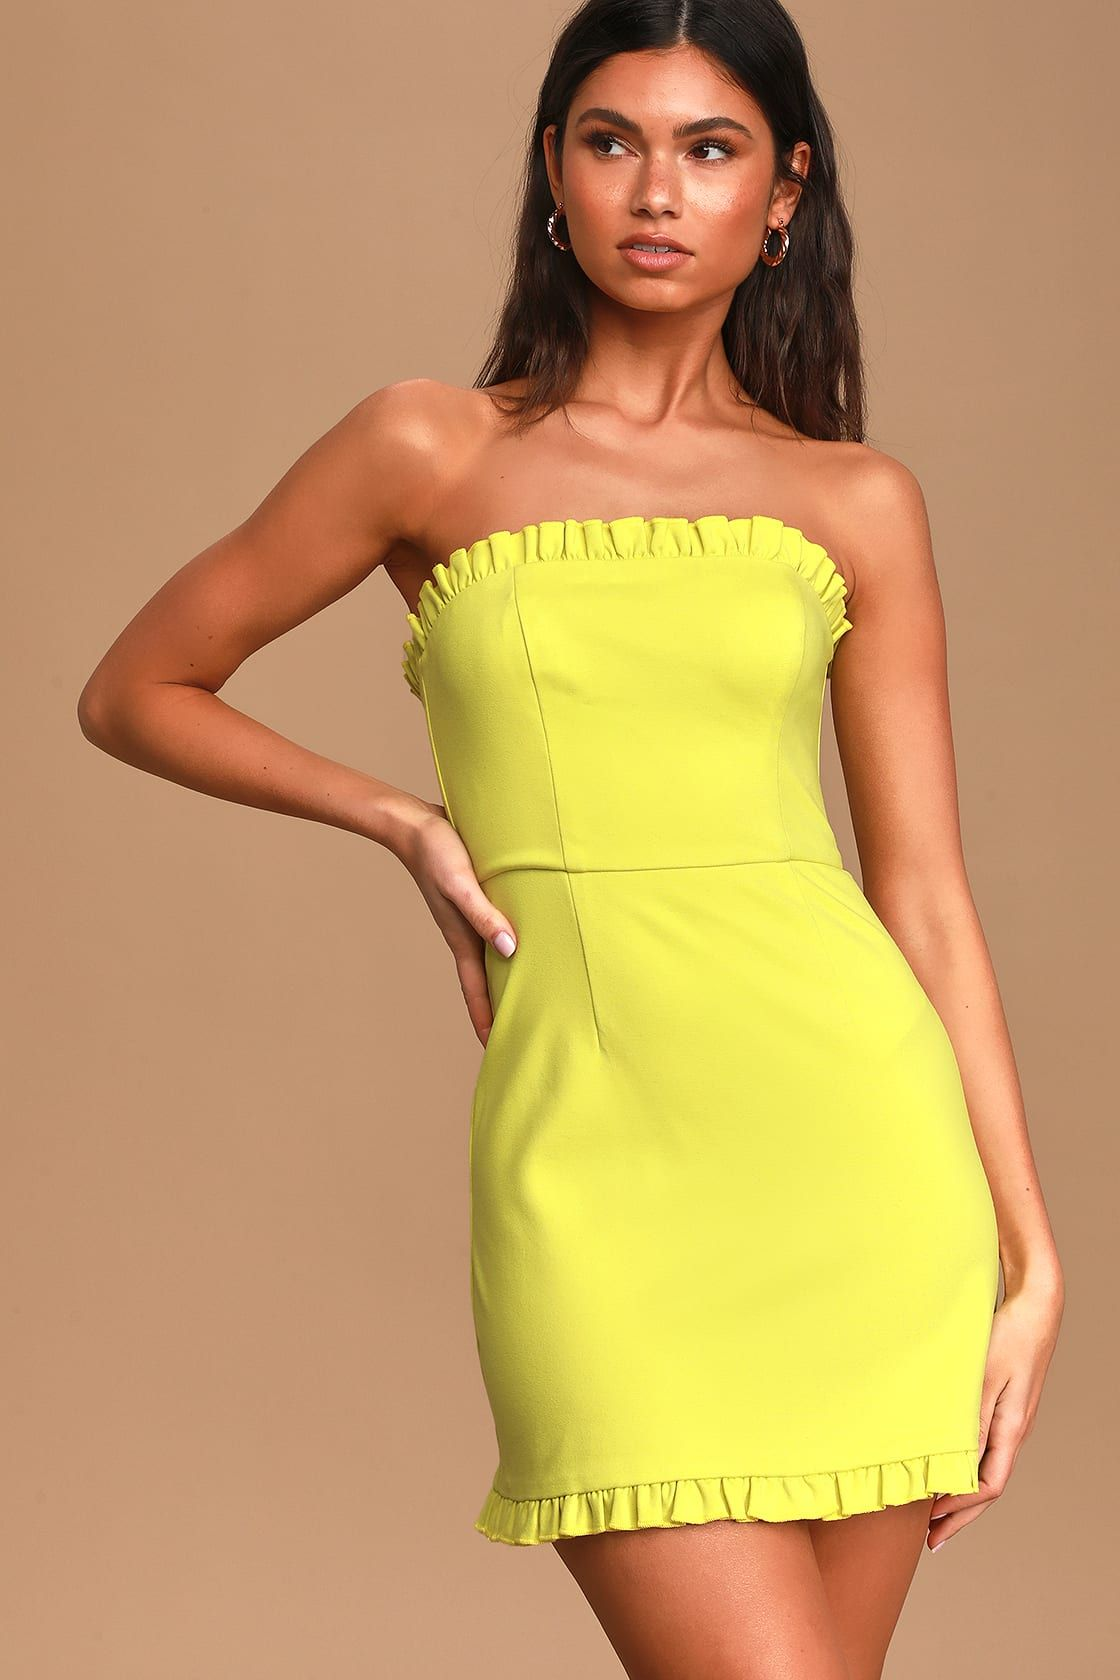 River Island Light Green Bardot Bodycon Dress 48 Liked On Polyvore Featuring Dresses Green Short Sleeve Dress Light Green Dress Bodycon Dress With Sleeves